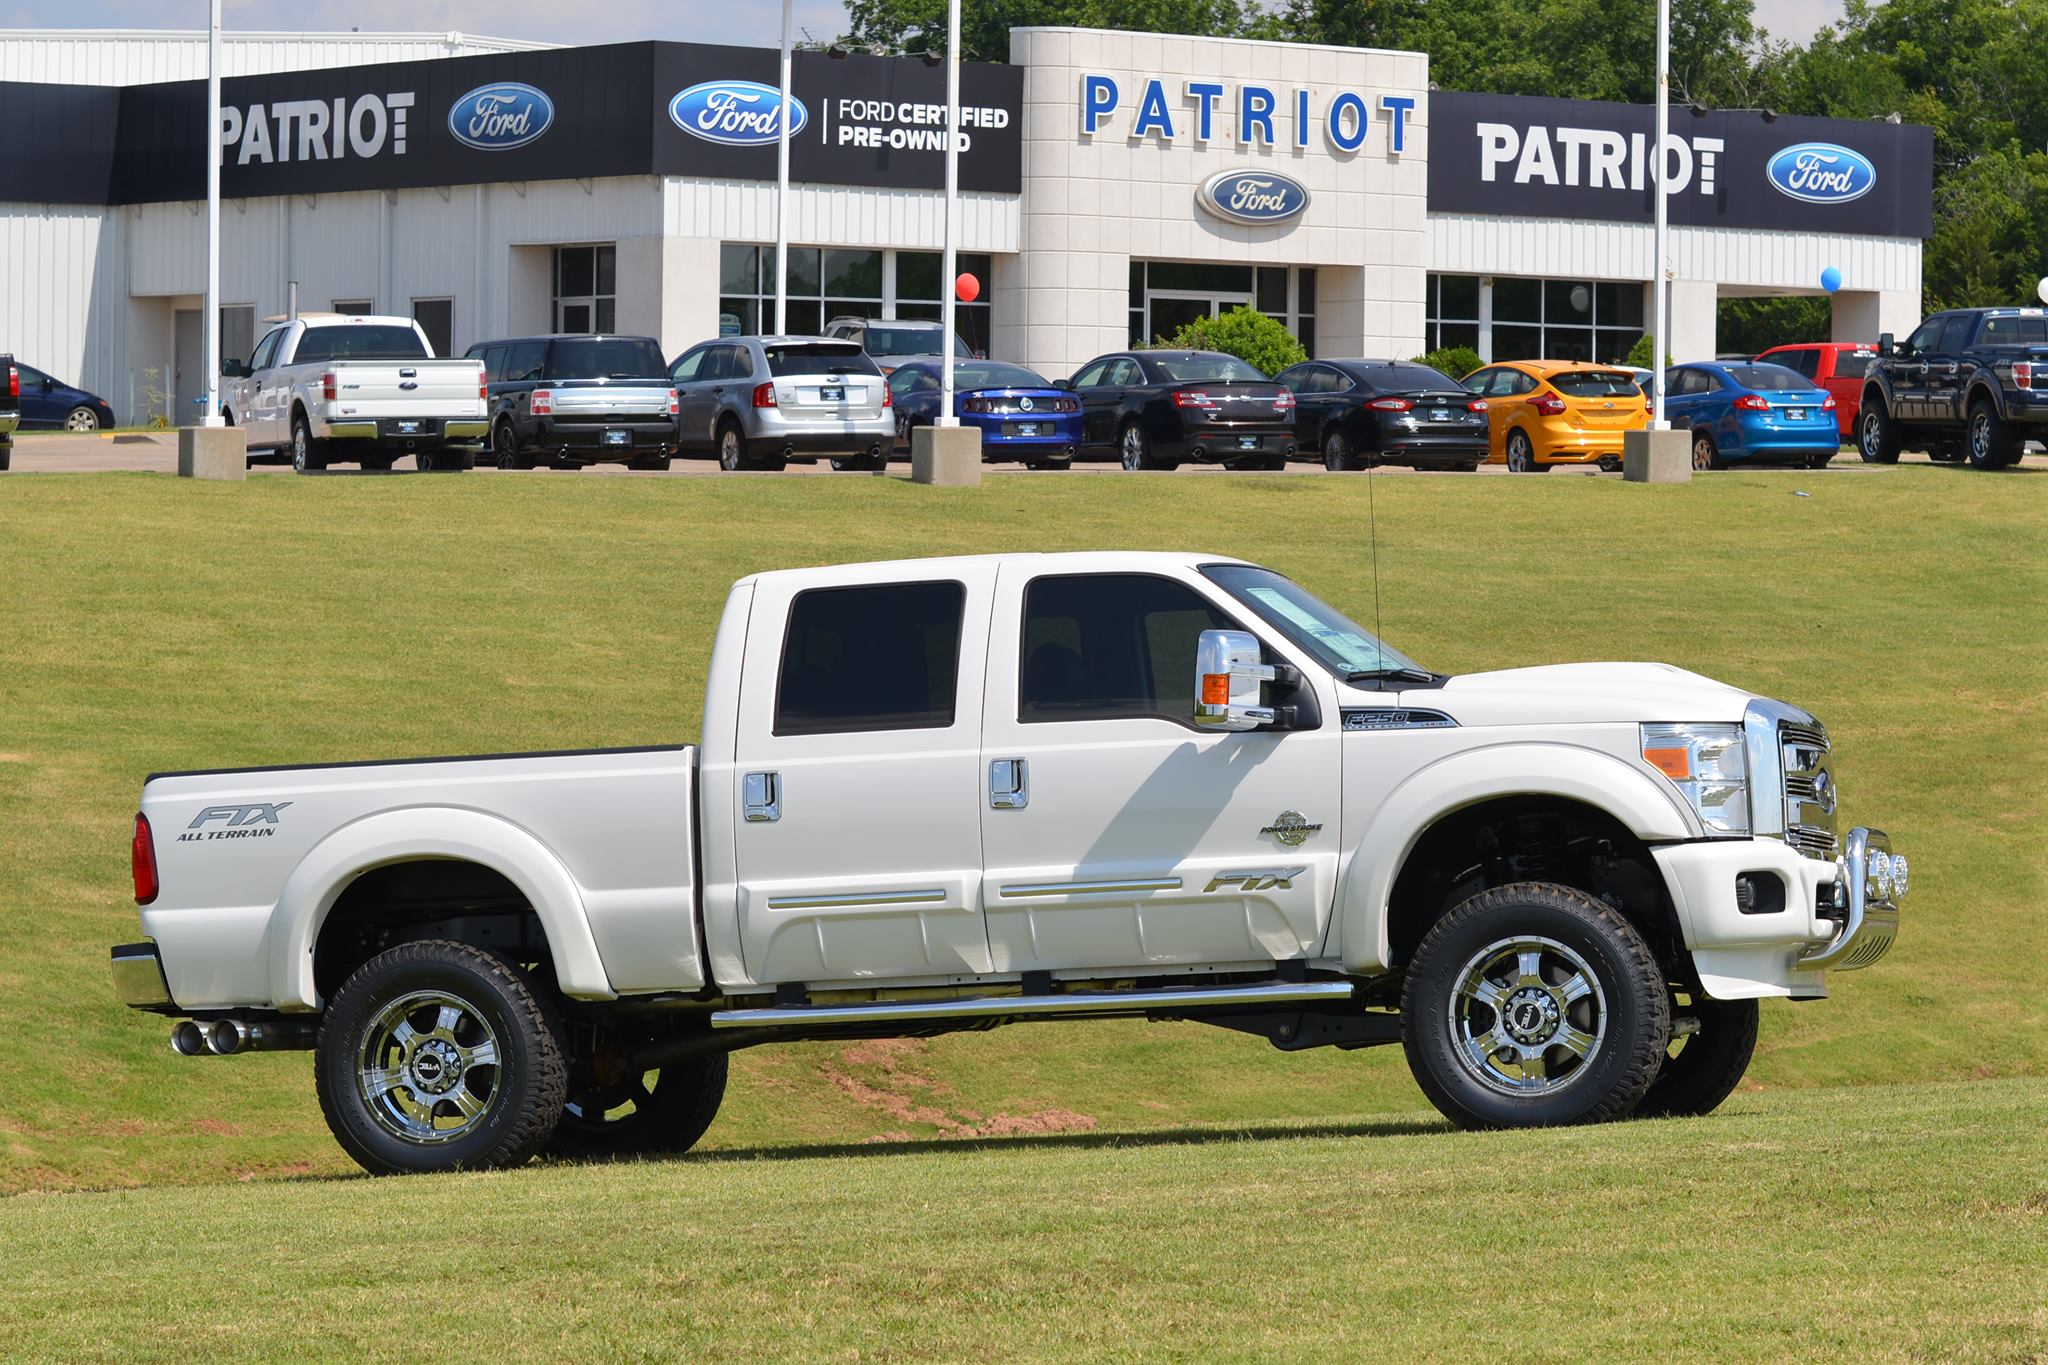 Used Cars Norman Ok >> About Patriot Ford | New Ford and Used Car Dealer | Purcell